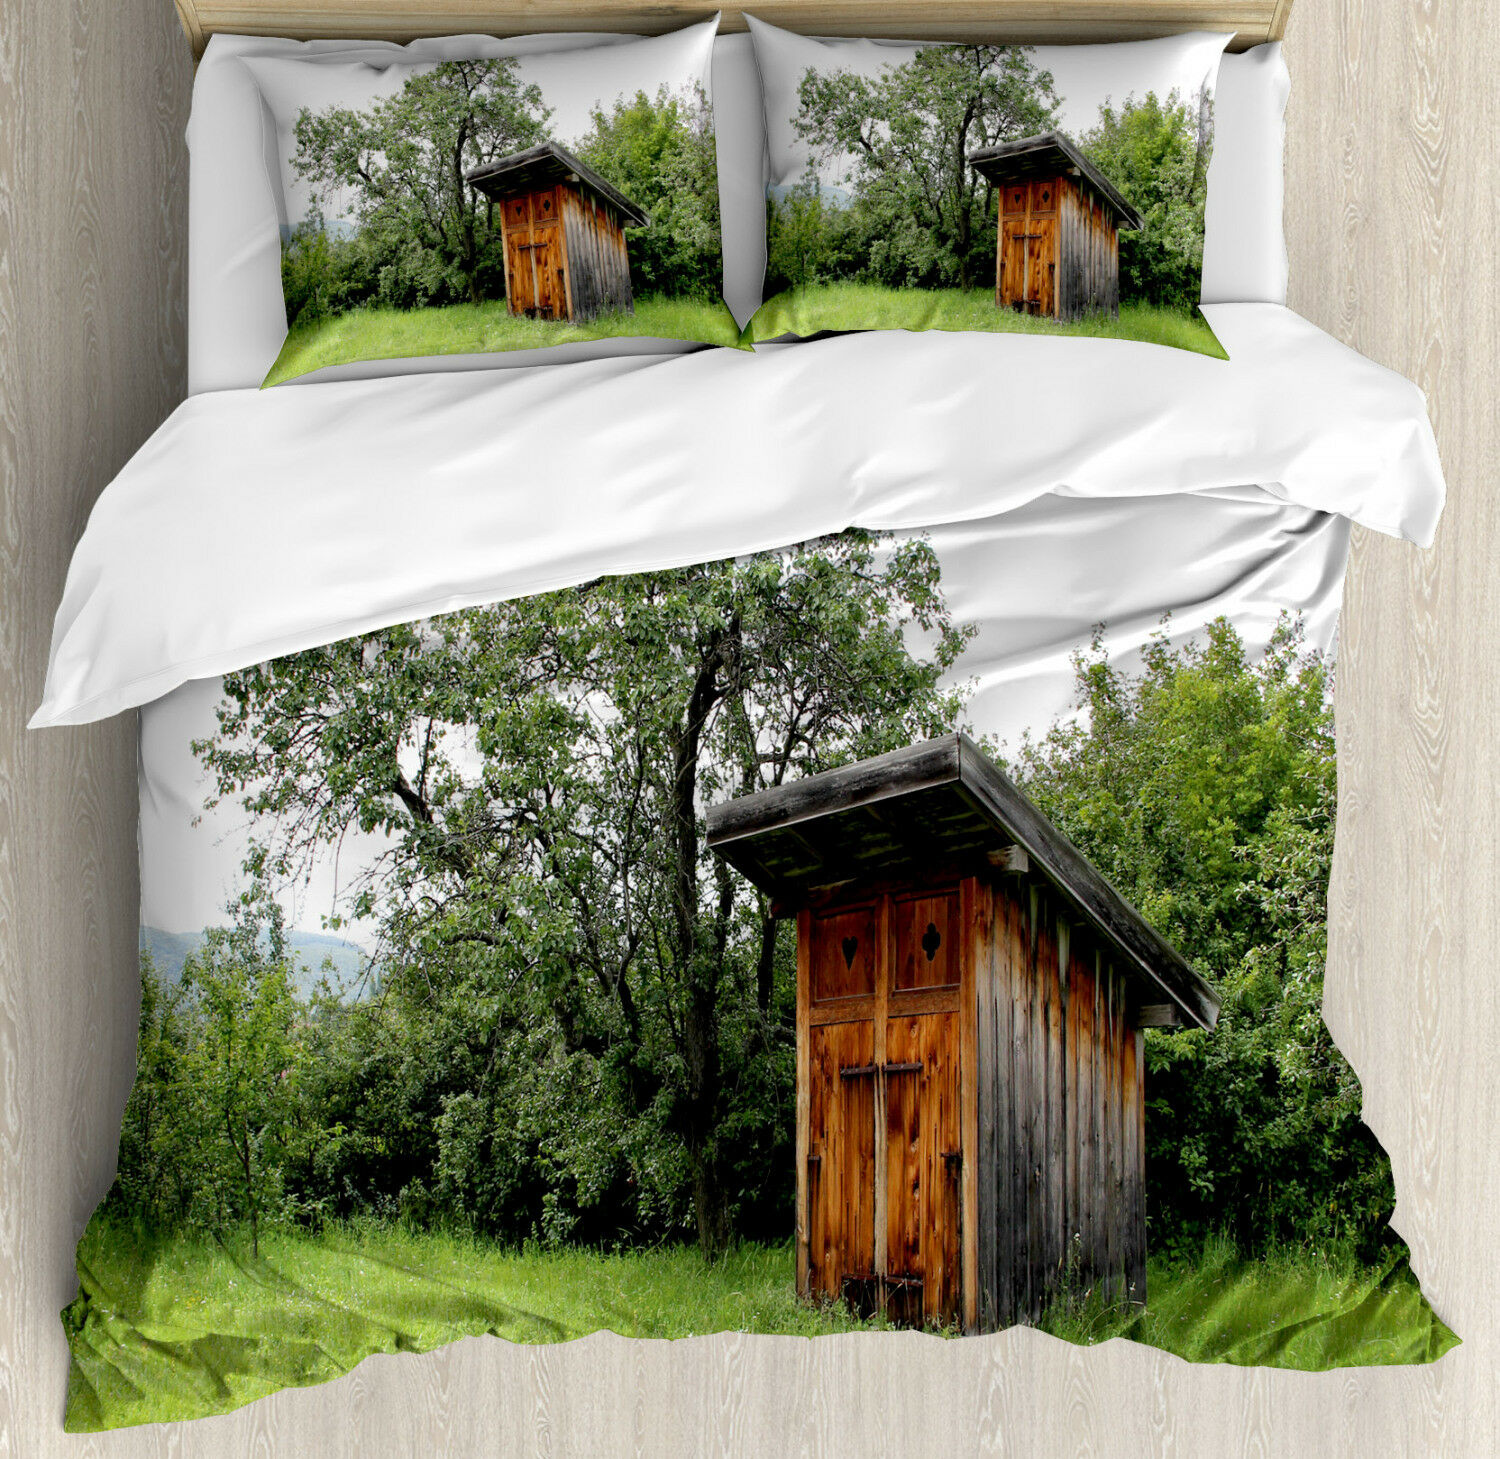 Outhouse Duvet Cover Set with Pillow Shams Wooden Hut in Forest Print